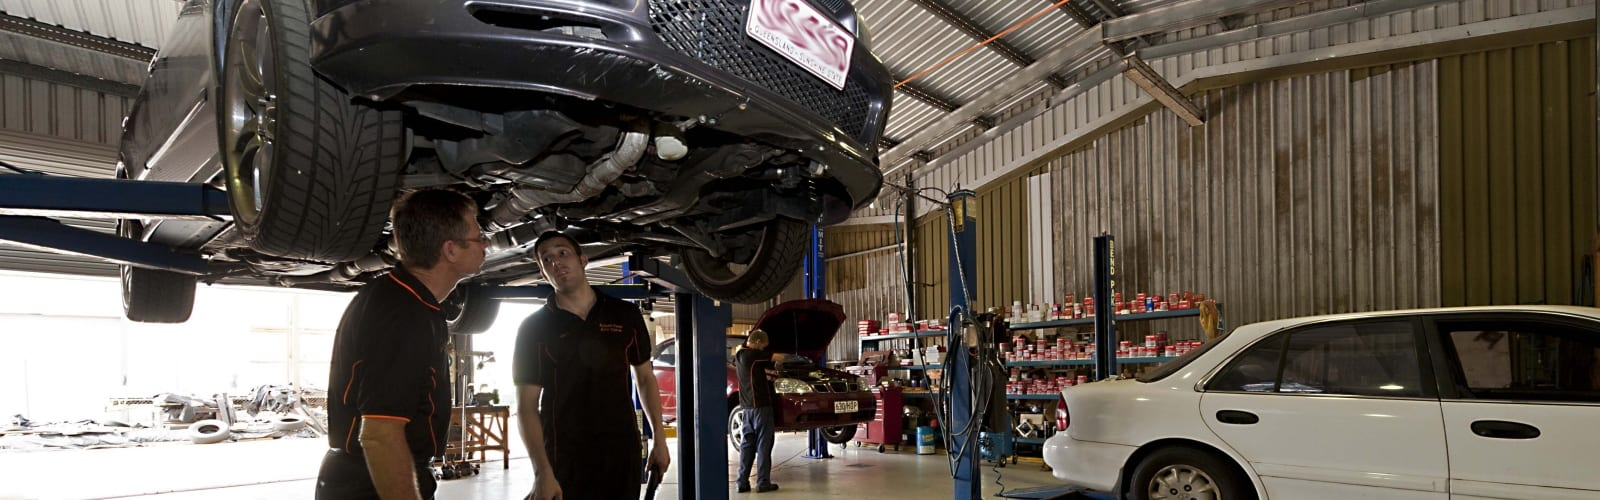 Very high resolution slider image showing Albany Creek Auto Centre's employees diagnosing and fixing a car